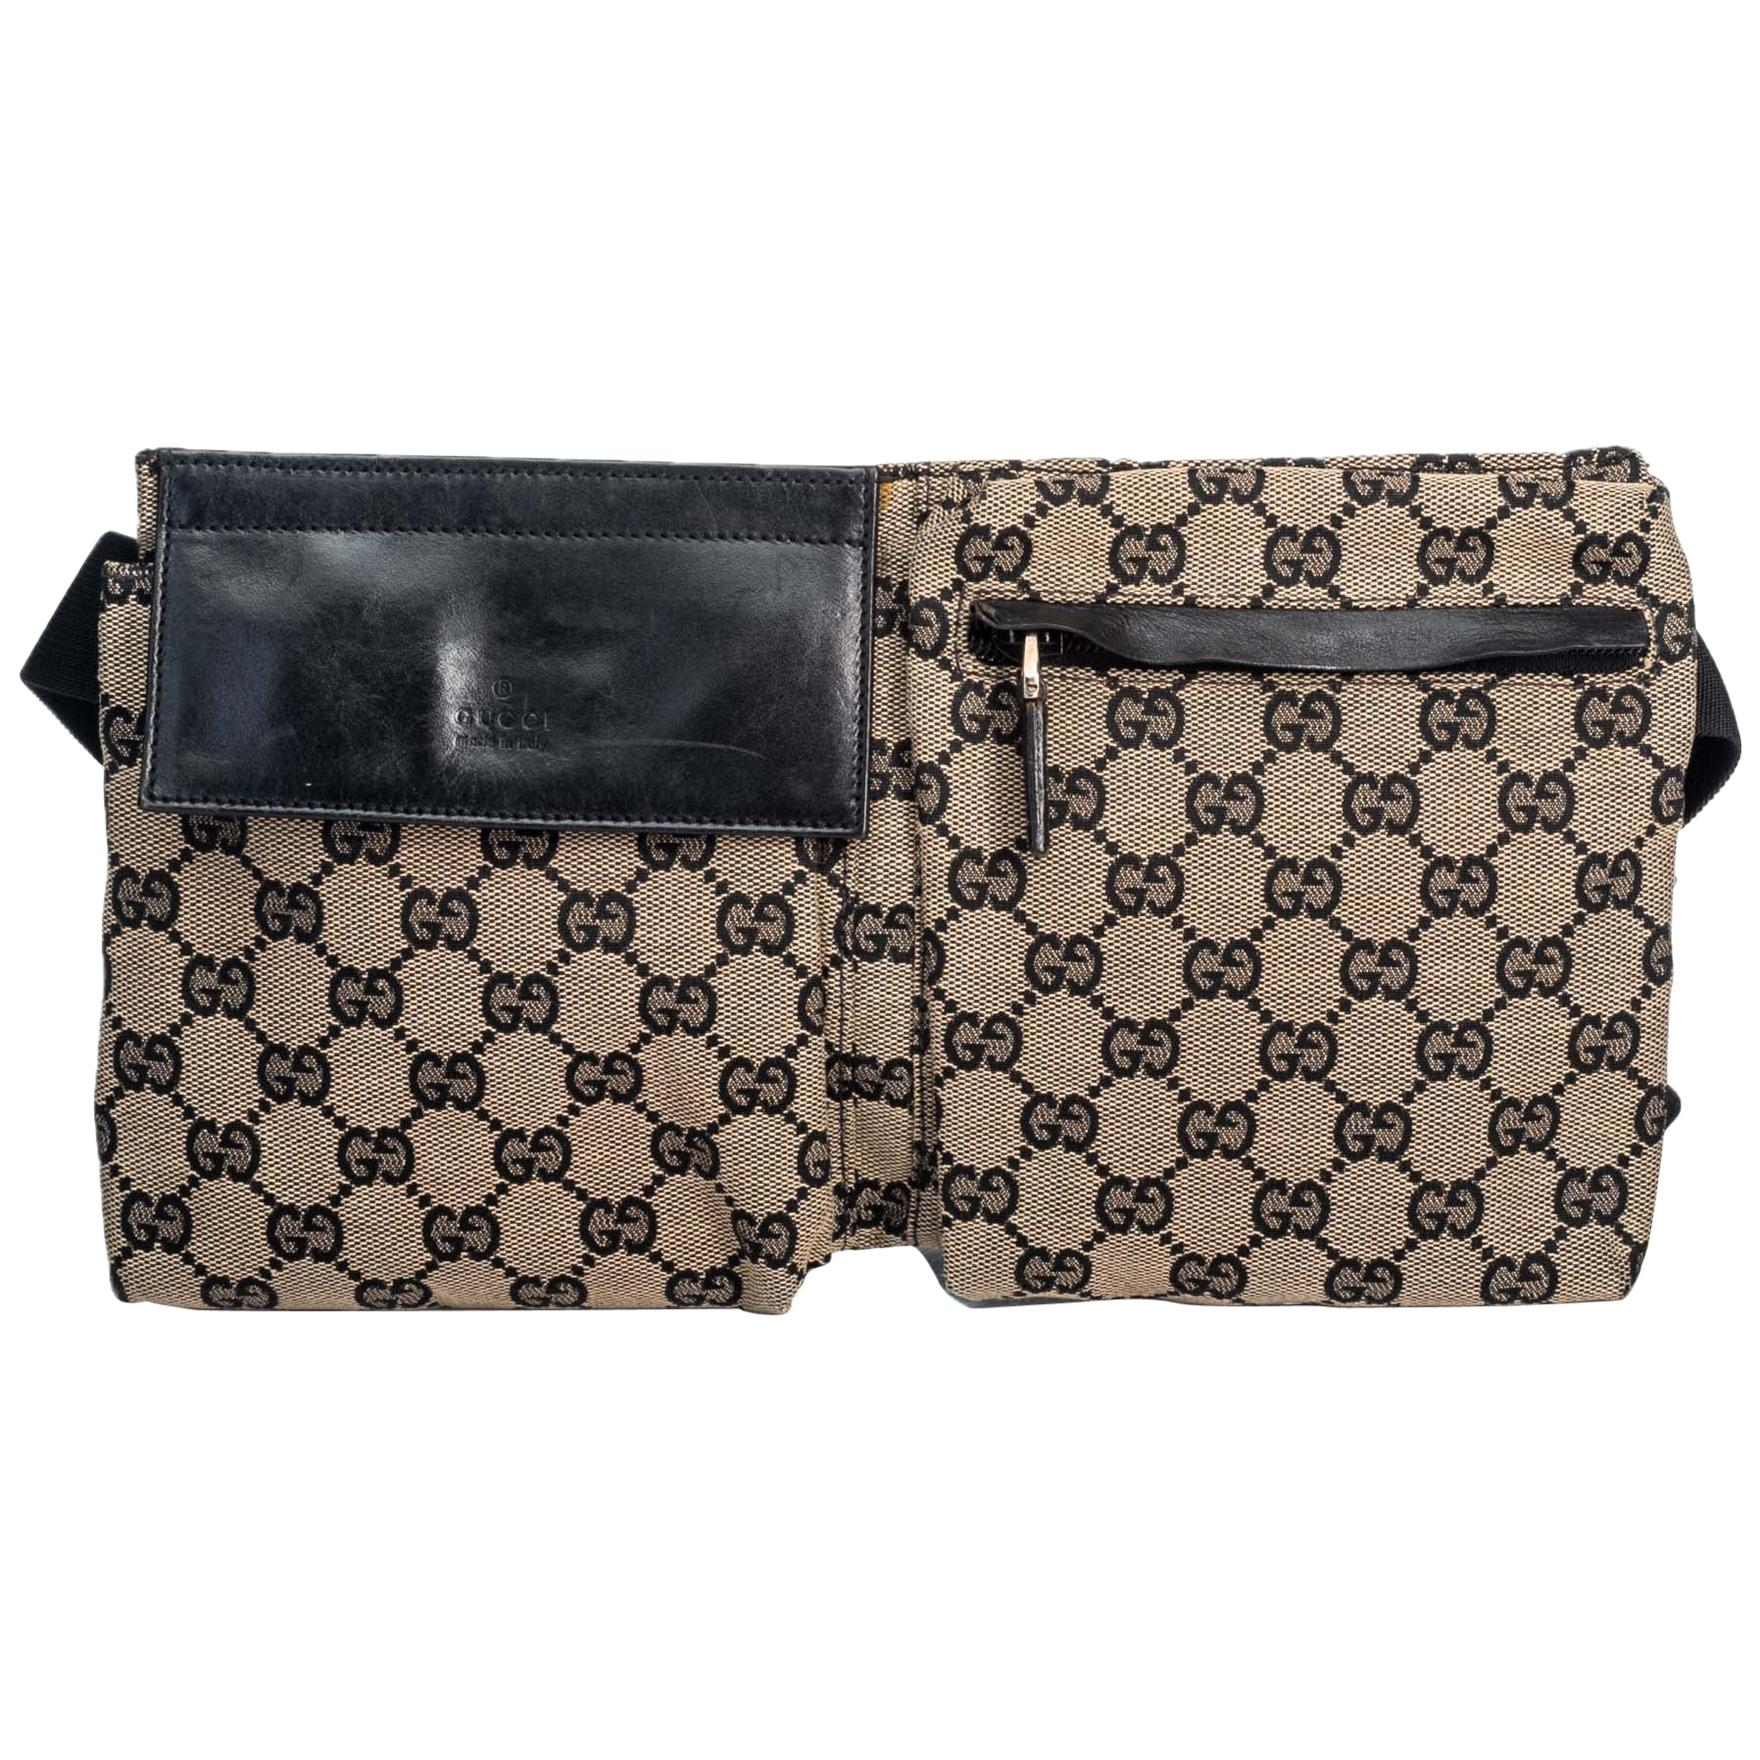 8848df807 Vintage Gucci Wallets and Small Accessories - 106 For Sale at 1stdibs